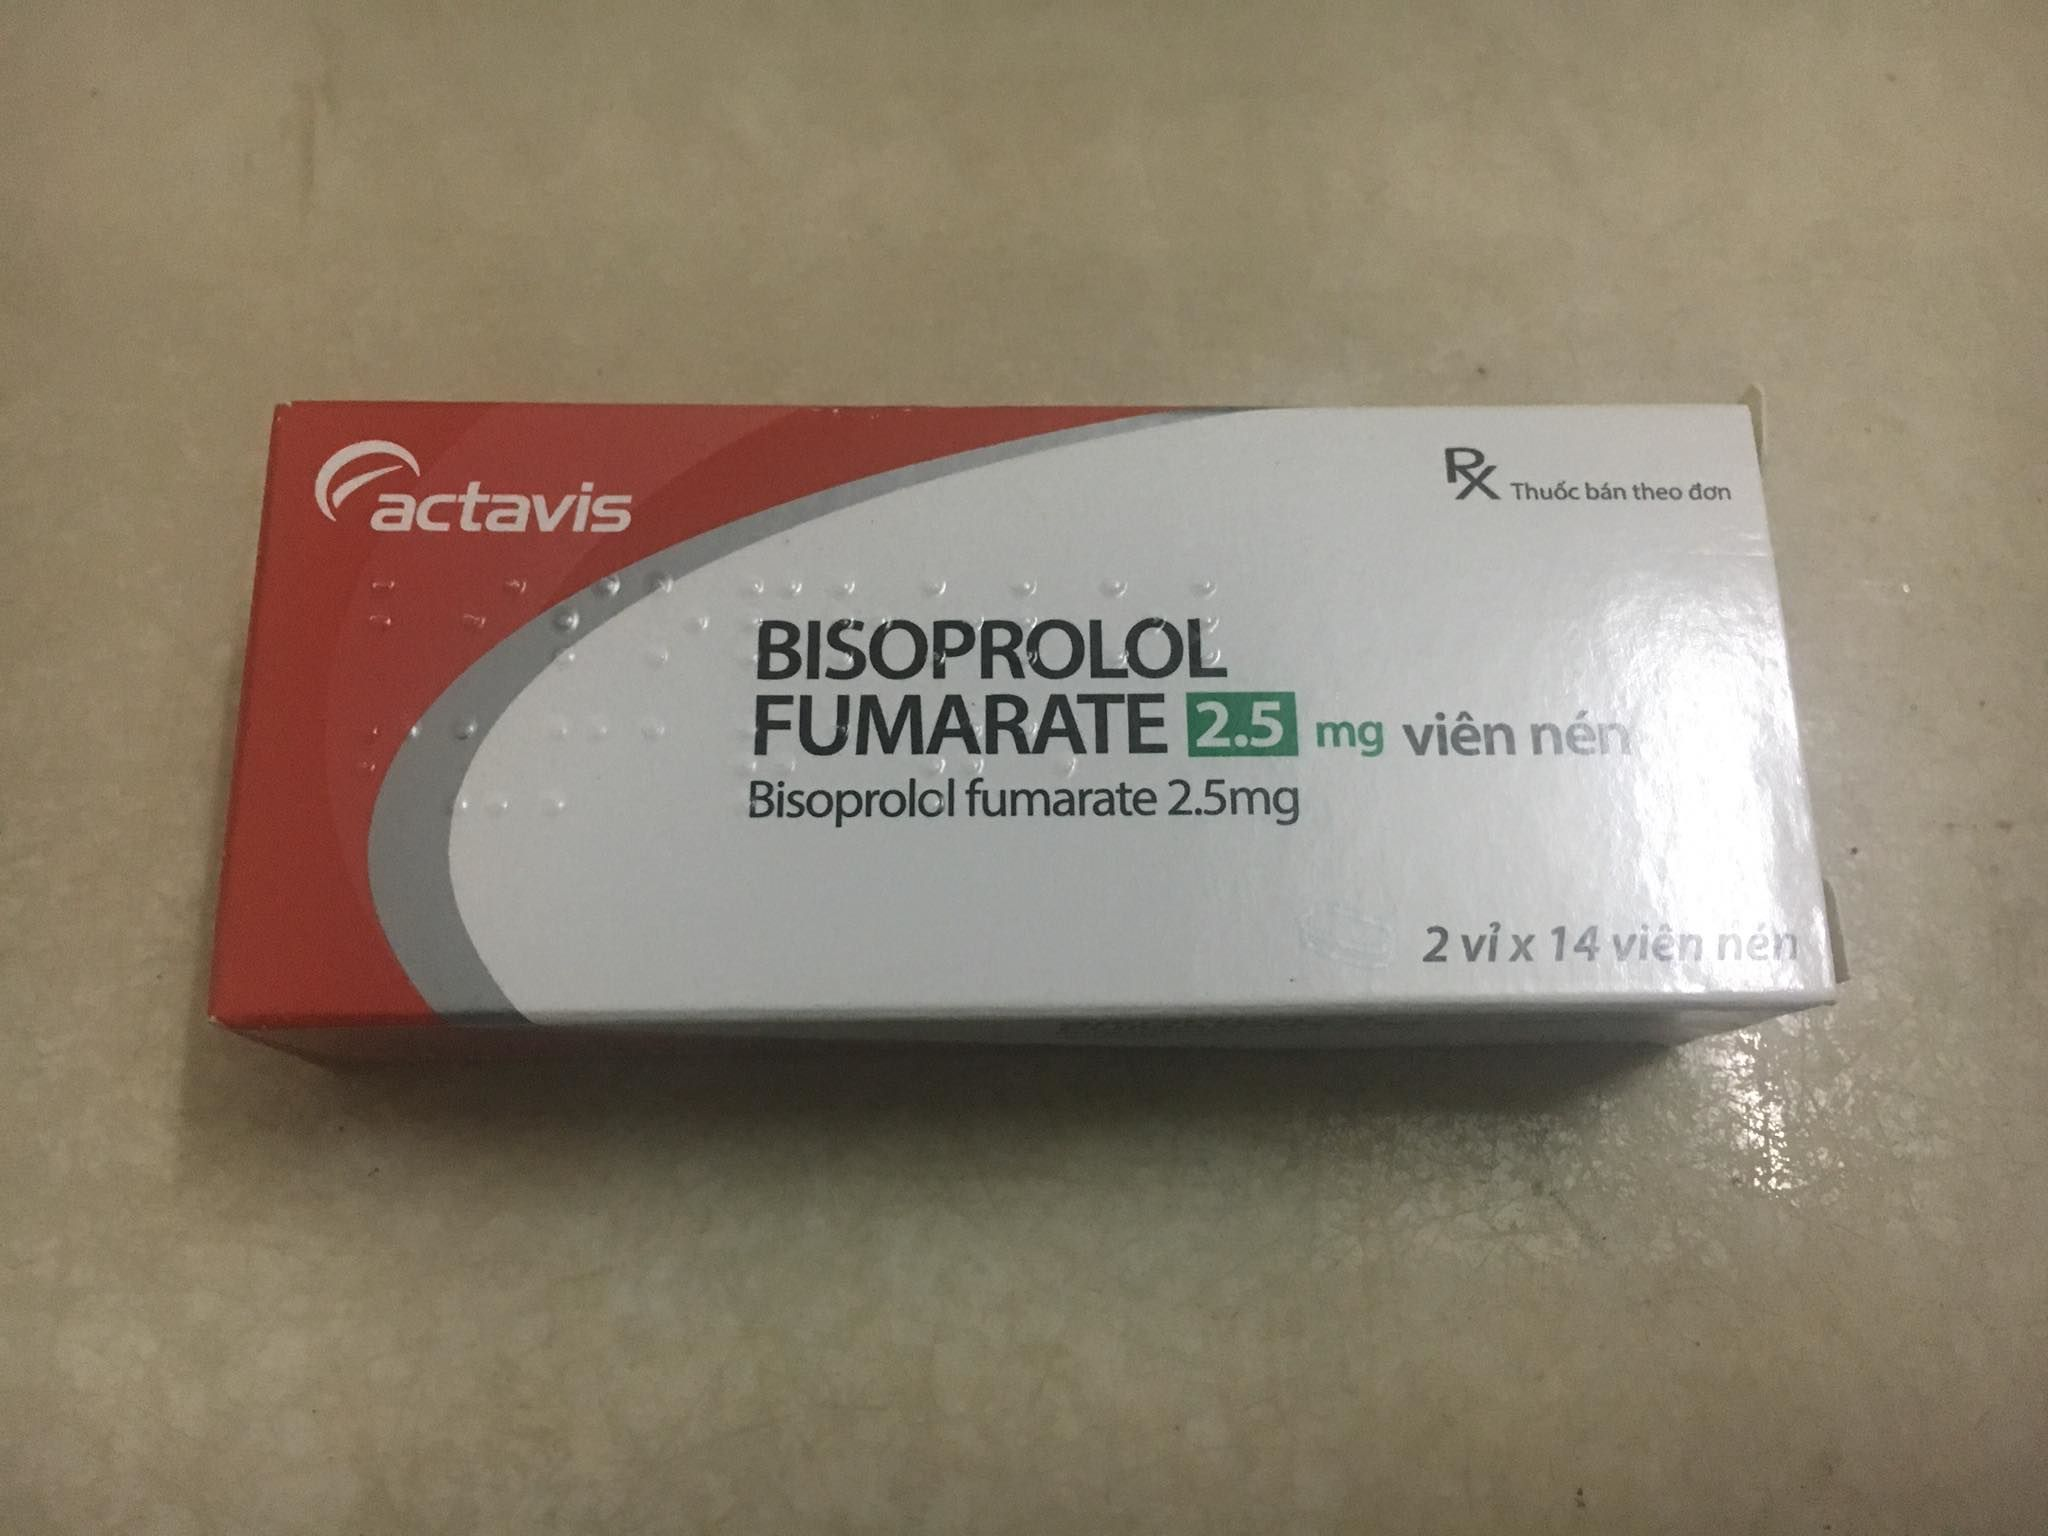 Bisoprolol Fumarate 2.5 mg